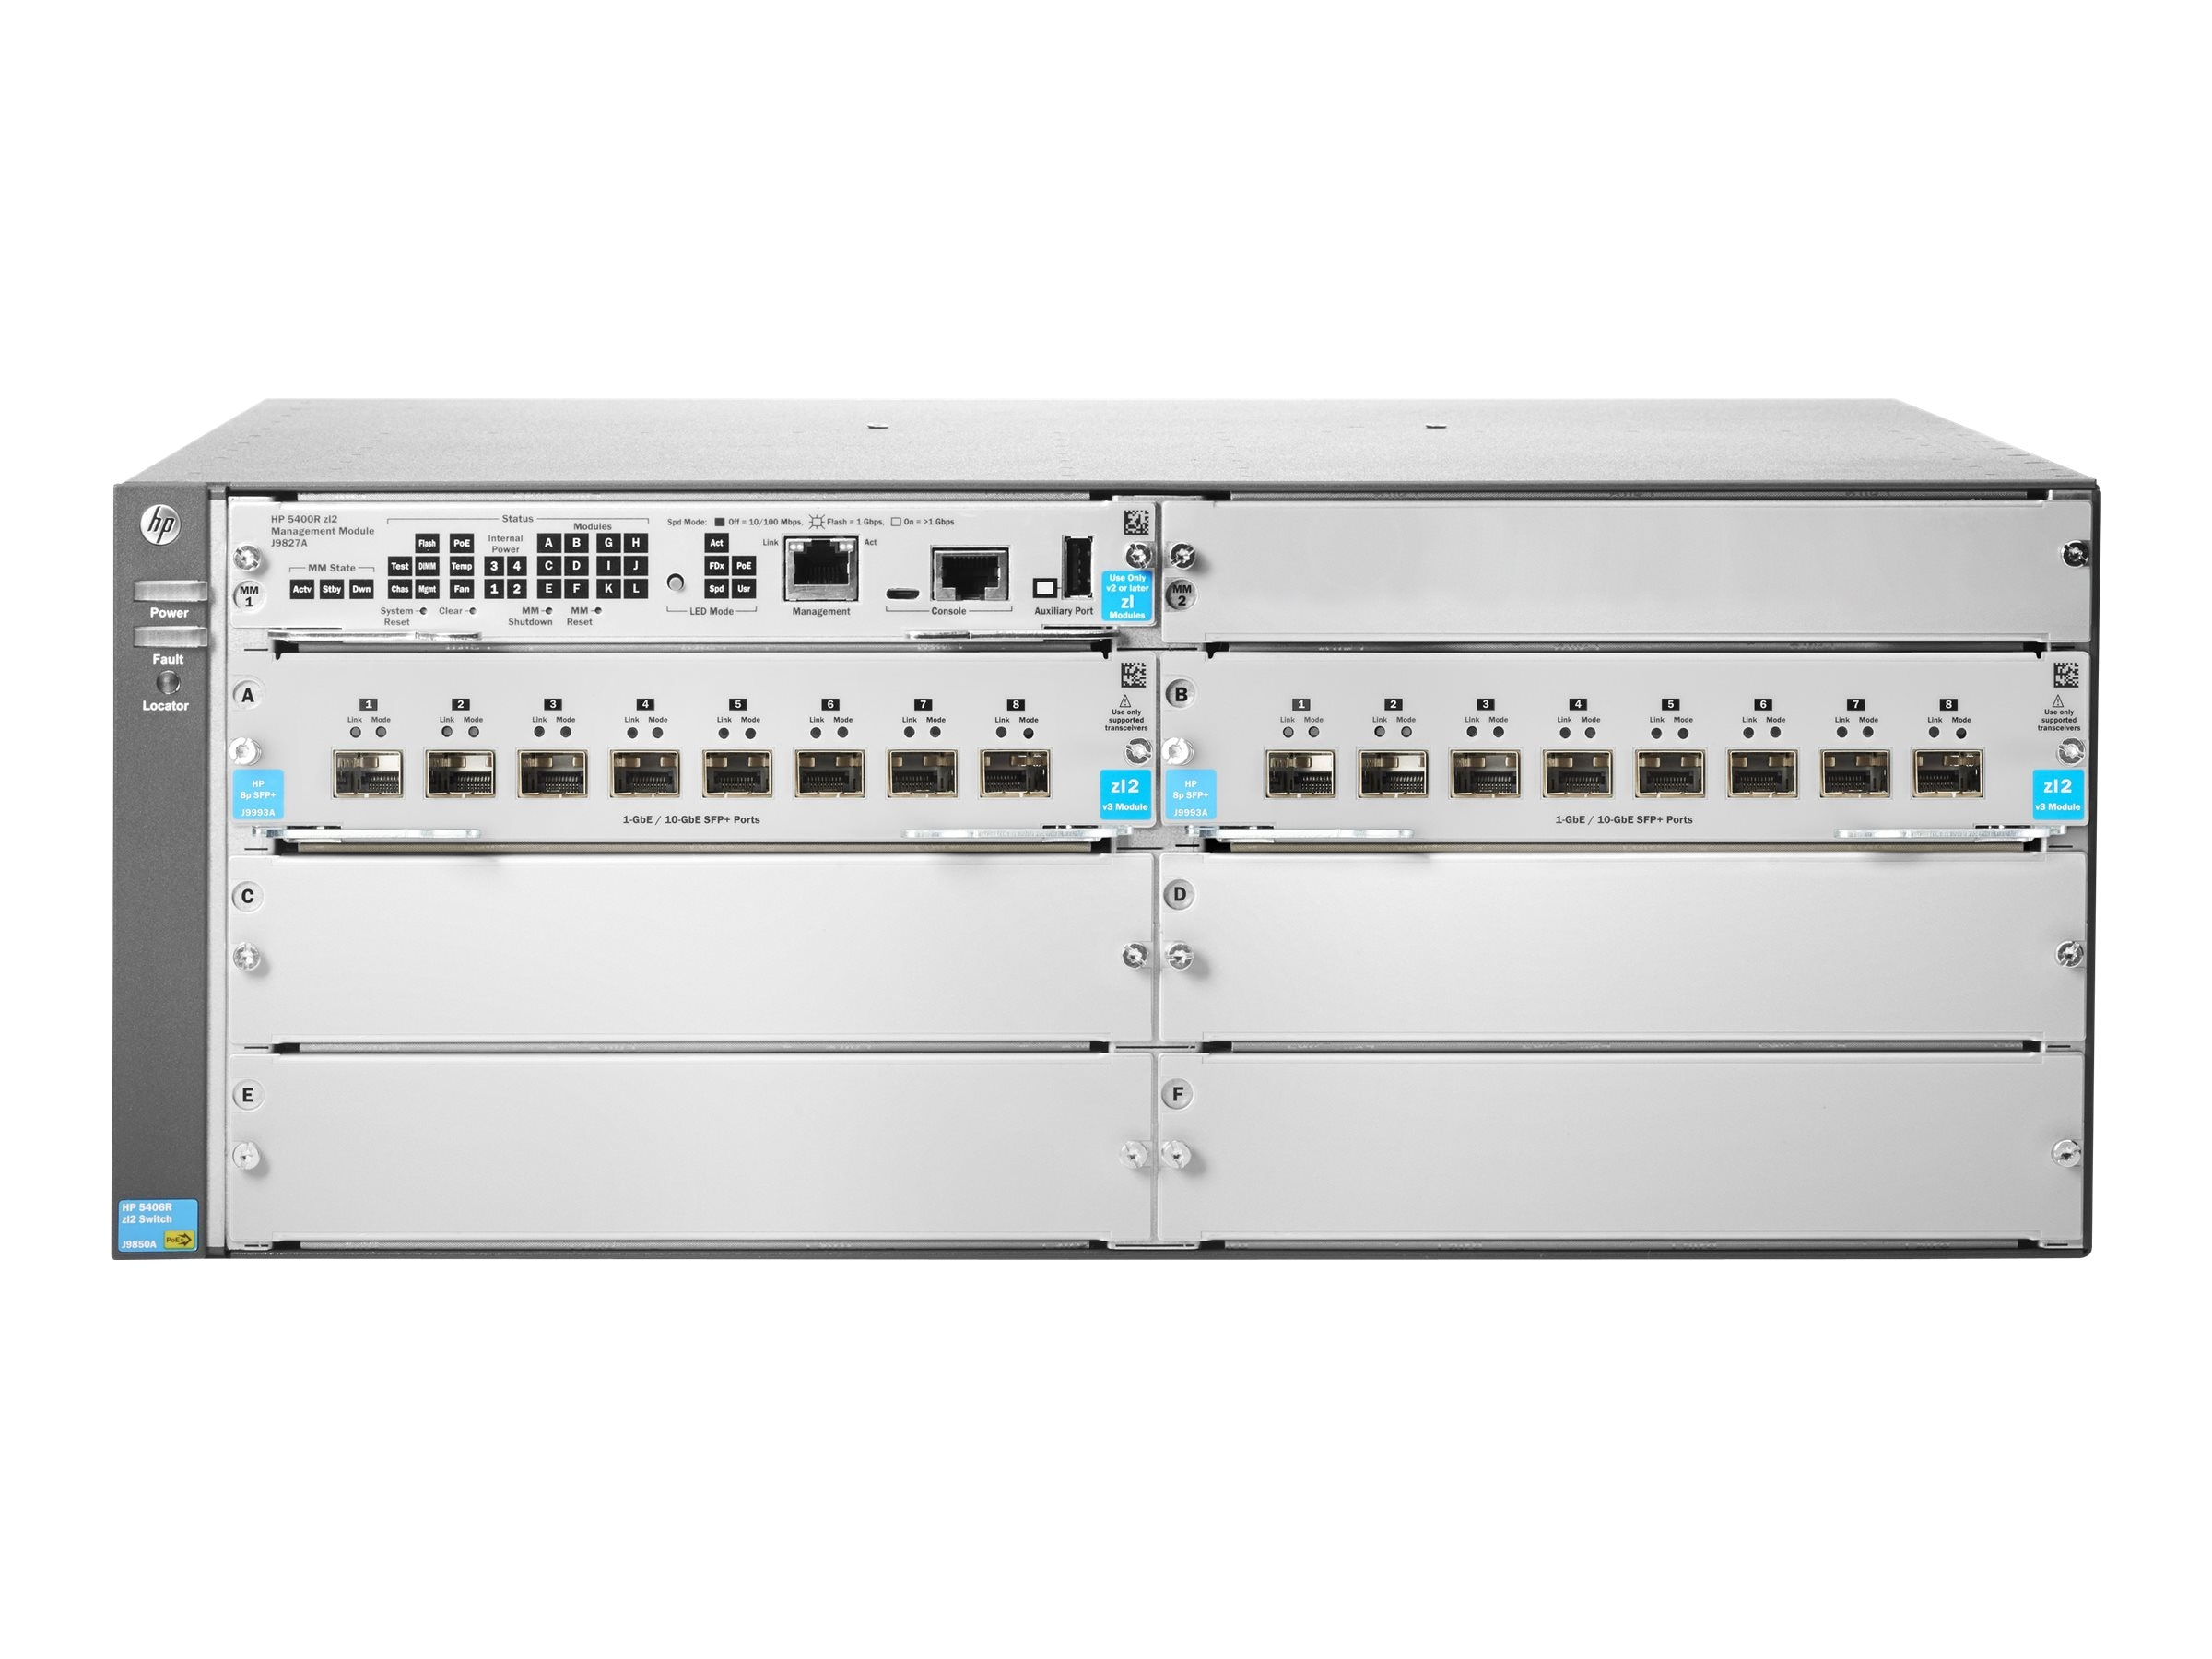 HPE 5406R 16-Port SFP+ v3 zl2 Switch (No PSU), JL095A, 20020391, Network Switches